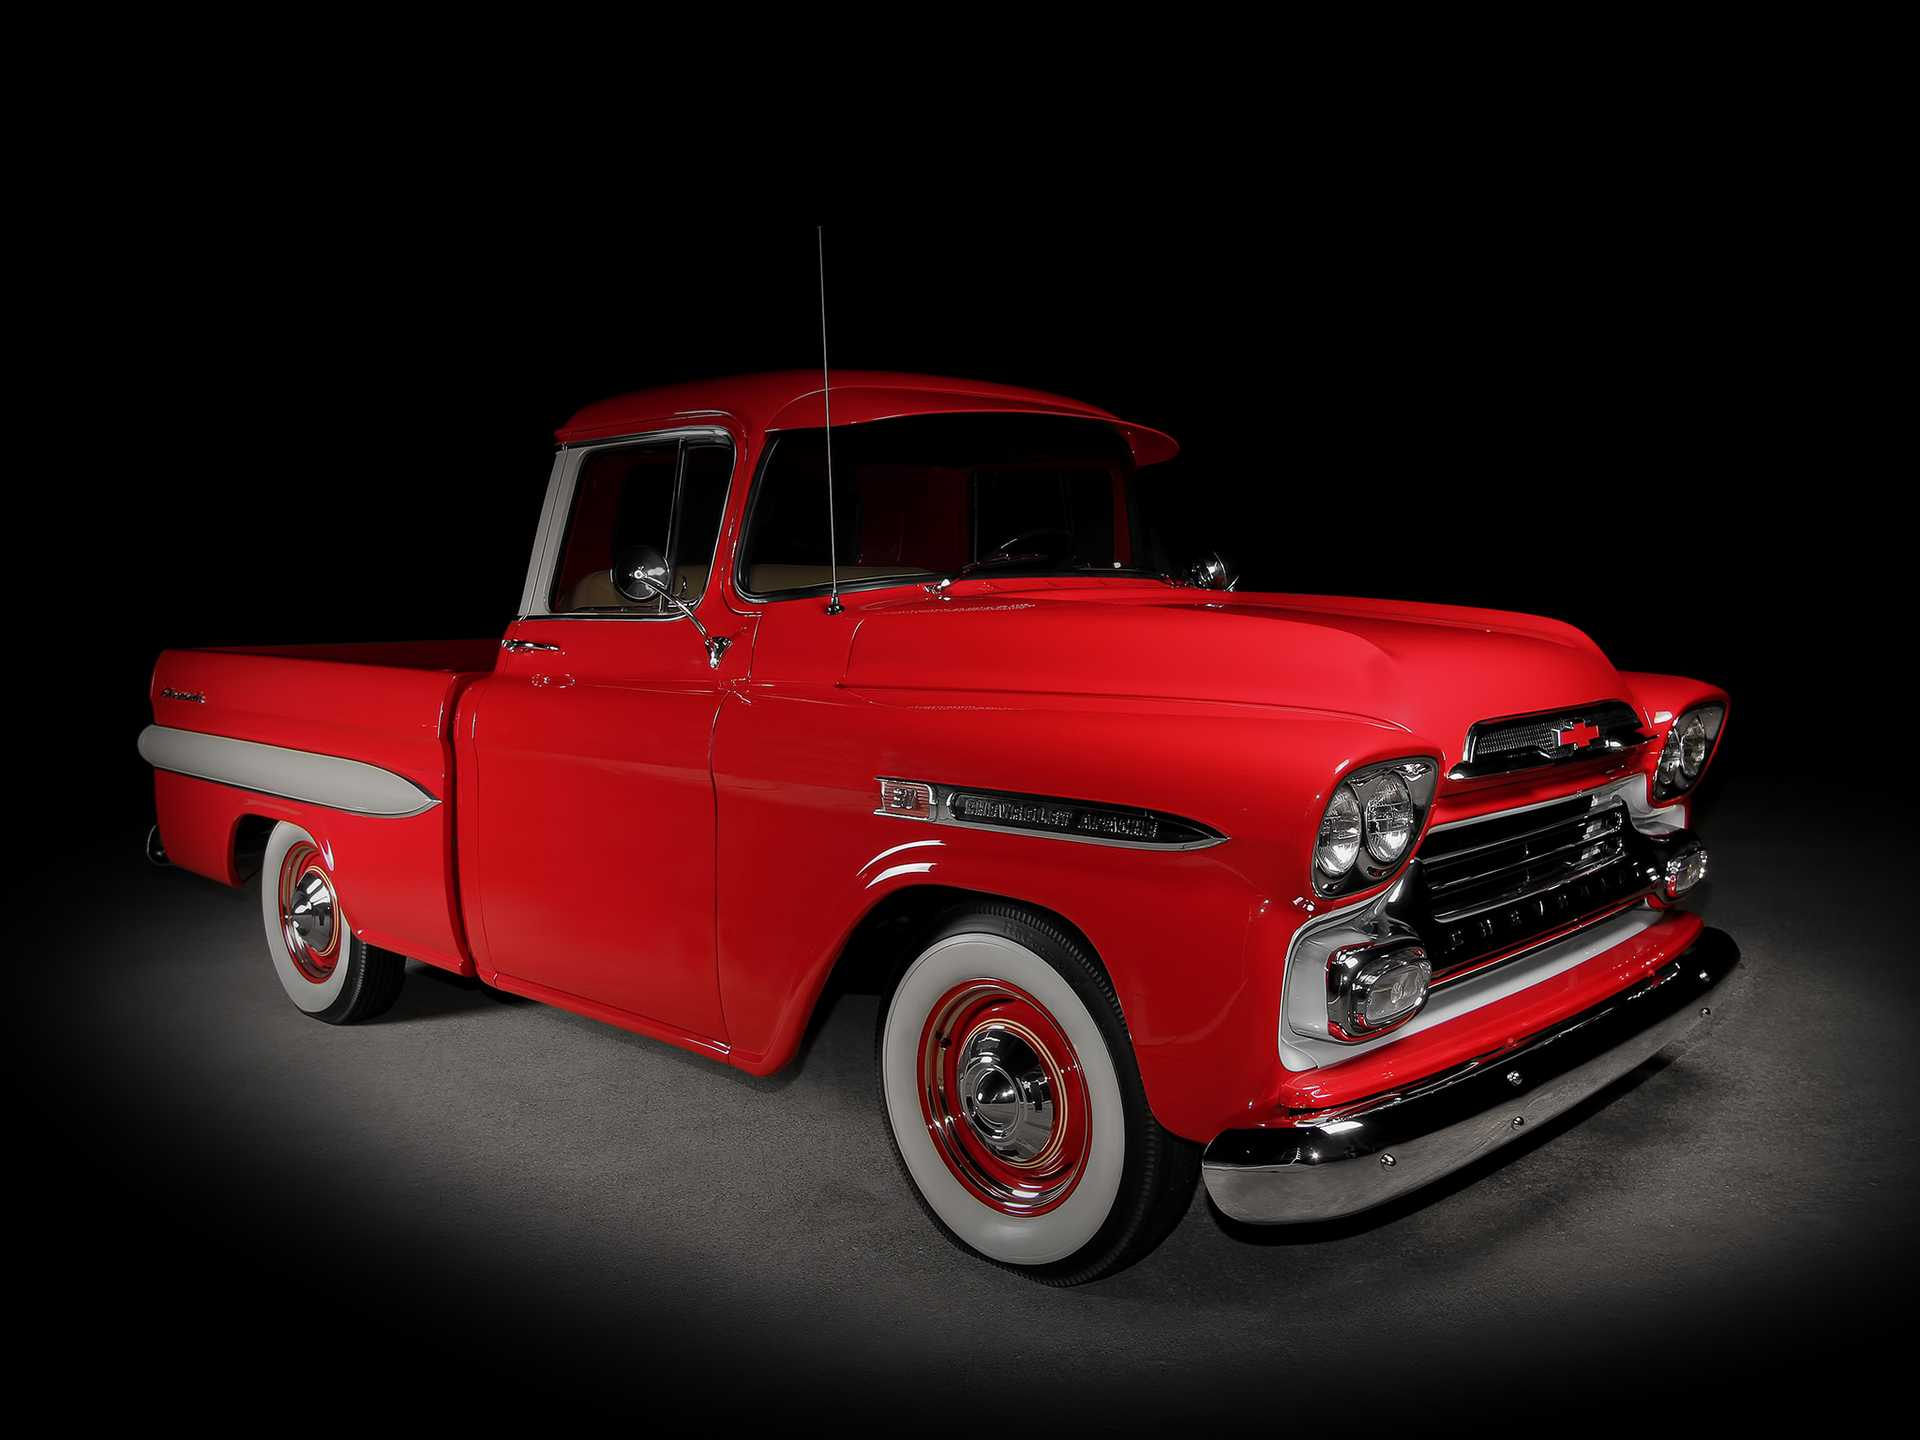 Chevrolet Apache 31/32 Fleetside 3.9 137hp, 1959